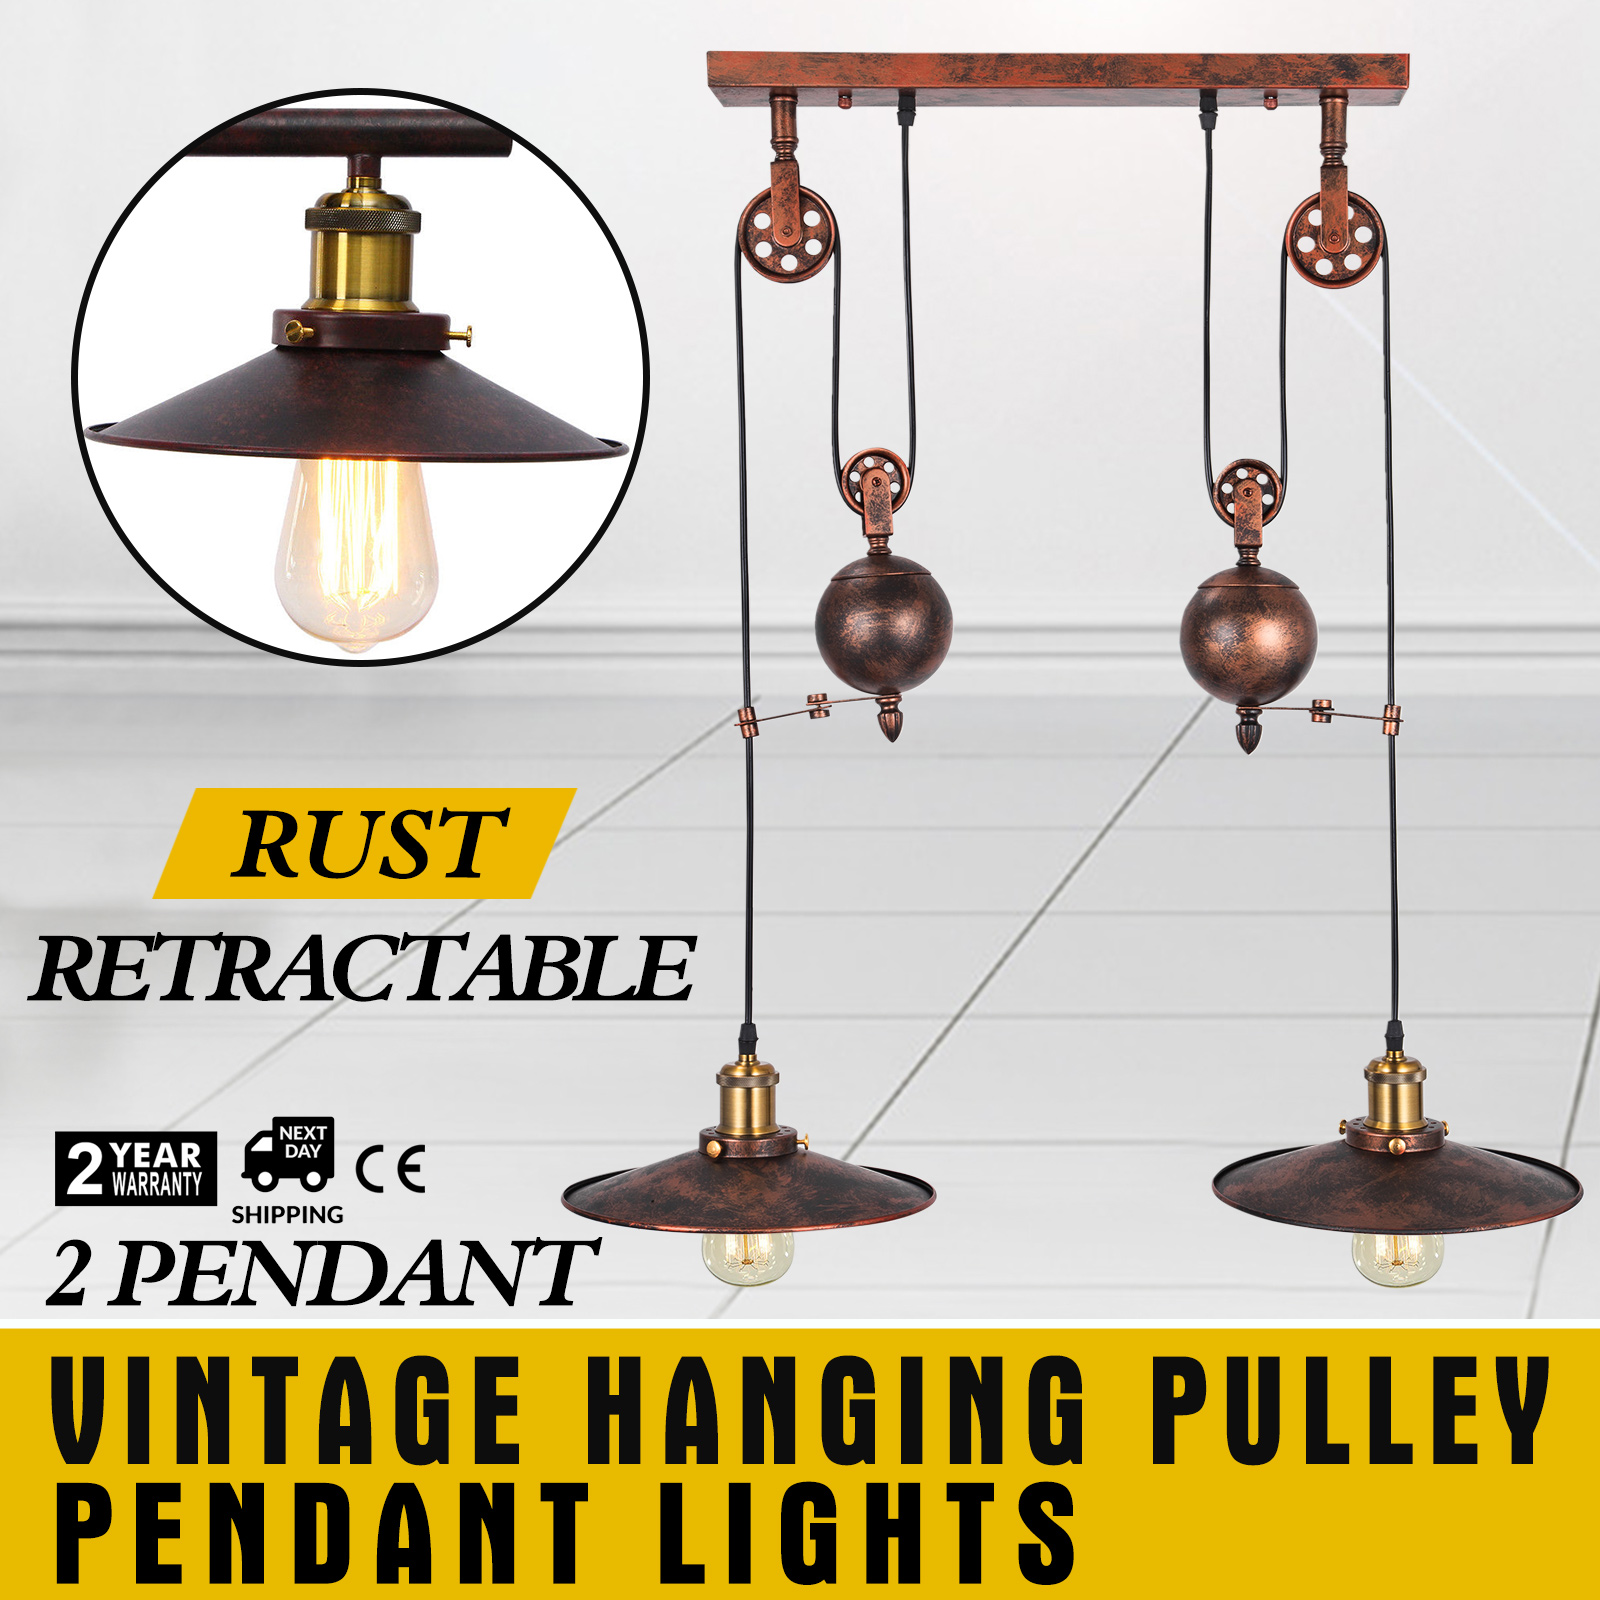 Details About Vintage Hanging Pulley Pendant Lights Adjule Kitchen